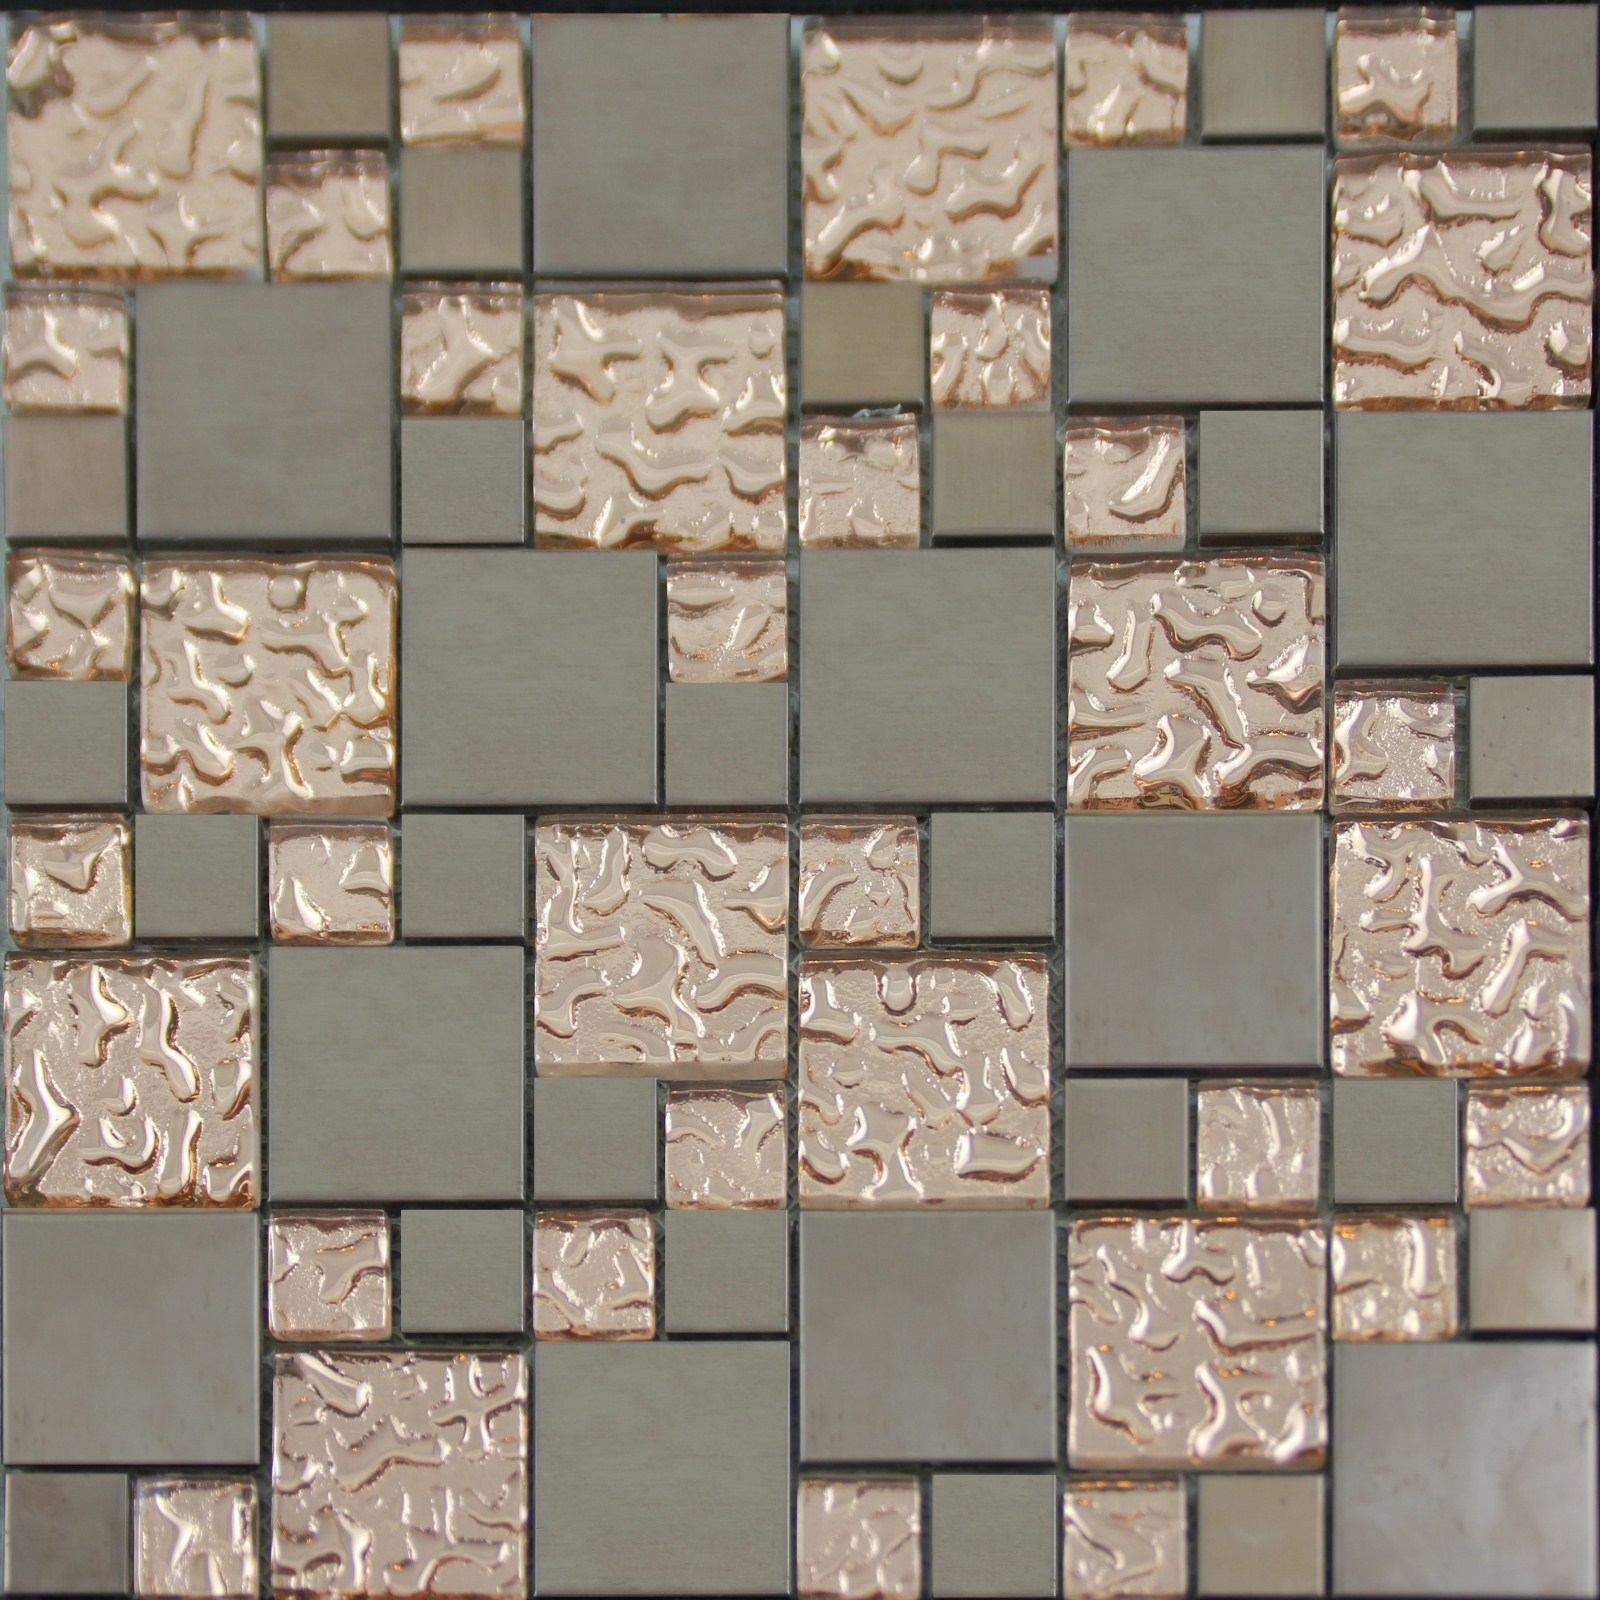 Copper Gl And Porcelain Square Mosaic Tile Designs Plated Ceramic